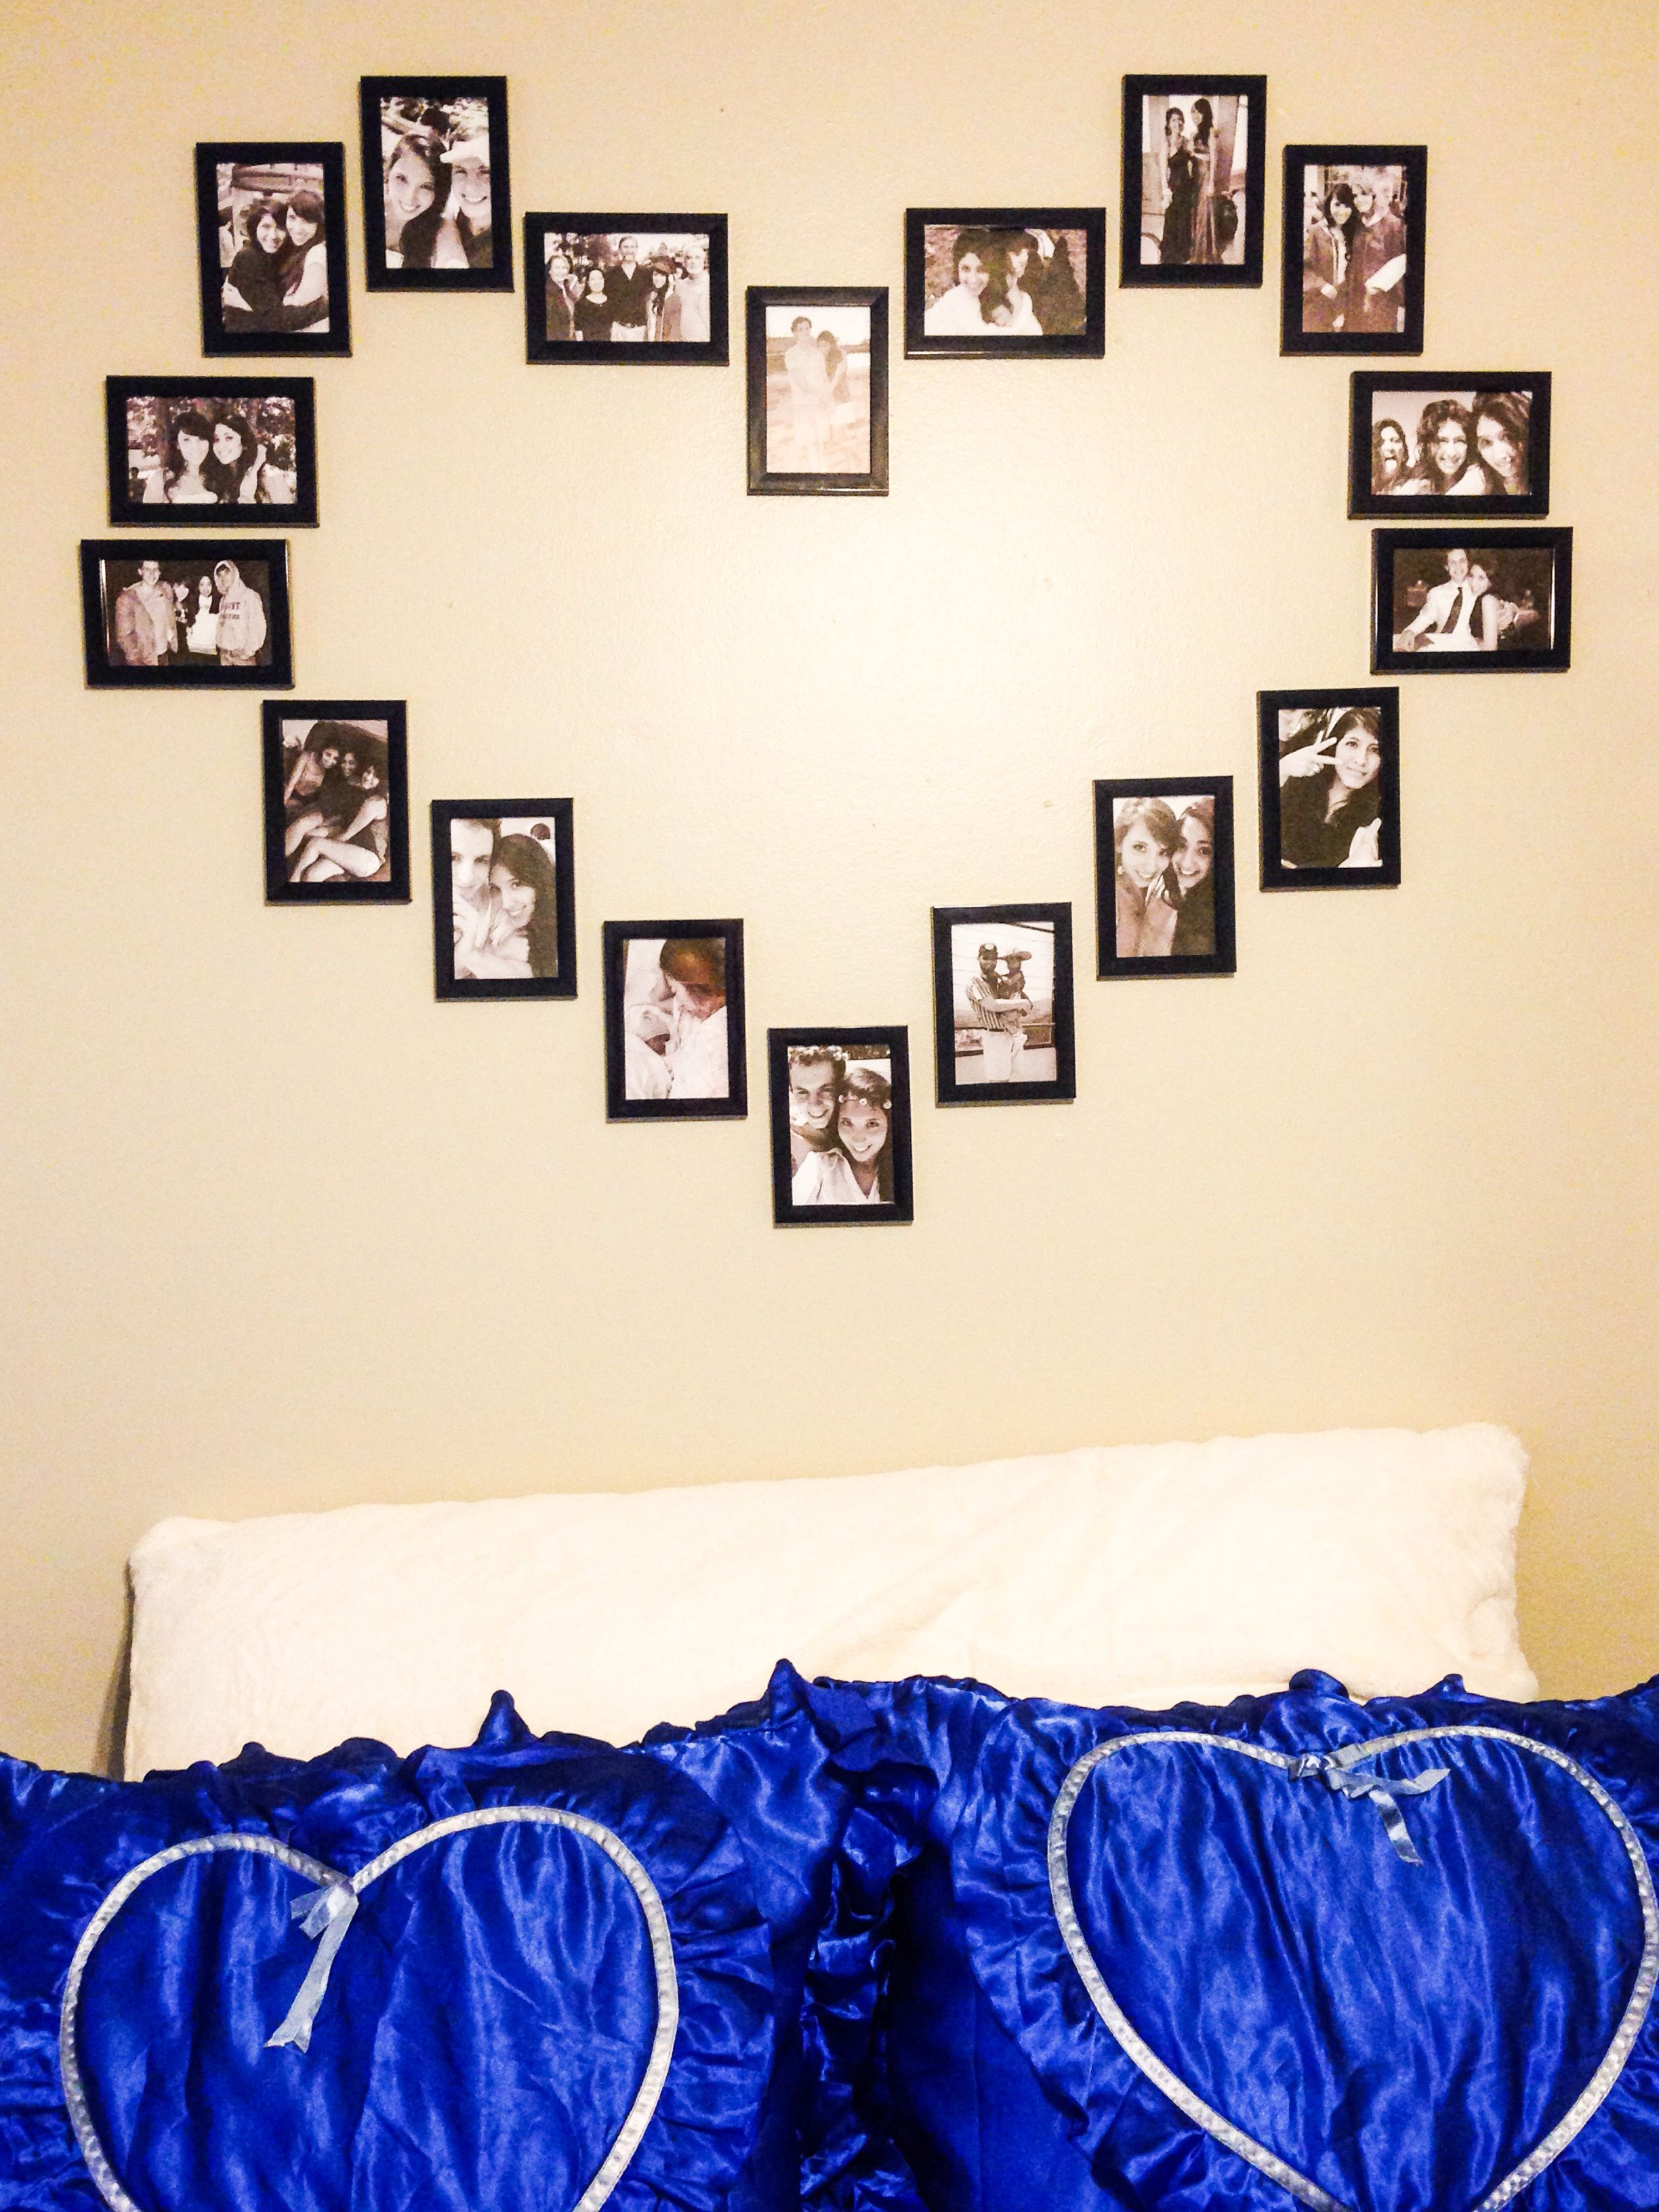 Bedroom wall decorating ideas picture frames - Diy Wall Heart Picture Collage 3 12 For All Picture Frames From Target